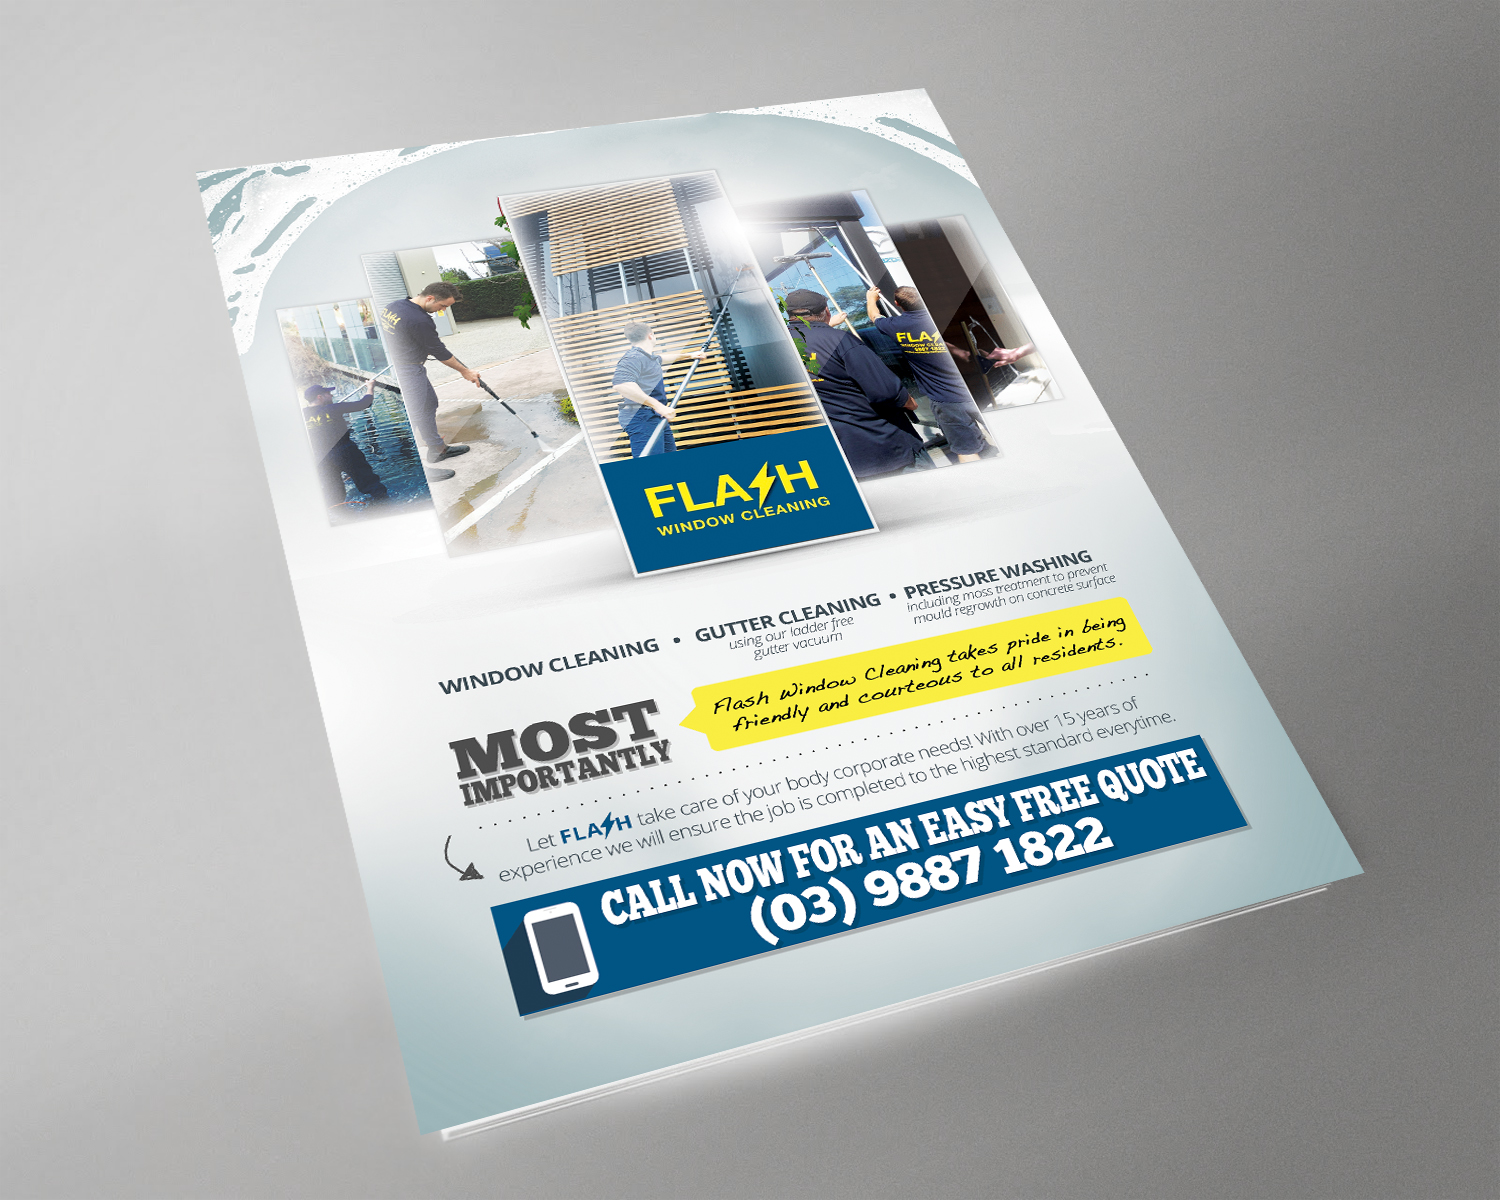 serious professional flyer design for flash window cleaning by flyer design by brian ellis for window cleaning flyer targeting body corporates design 12223294